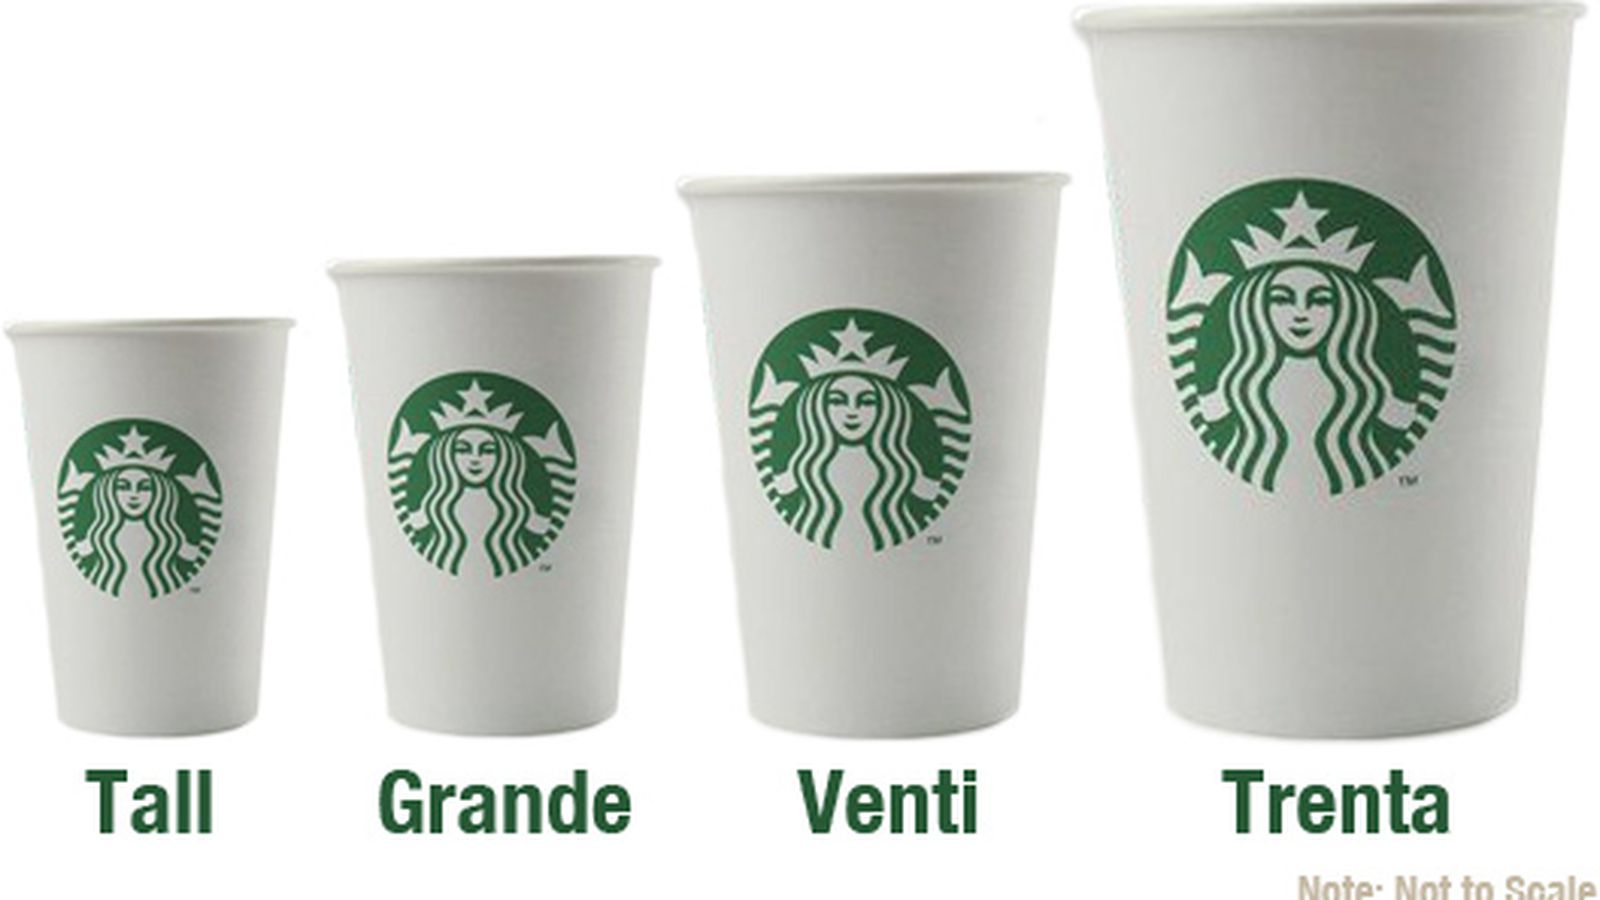 Starbucks under fire for their cup sizes in China | the ...